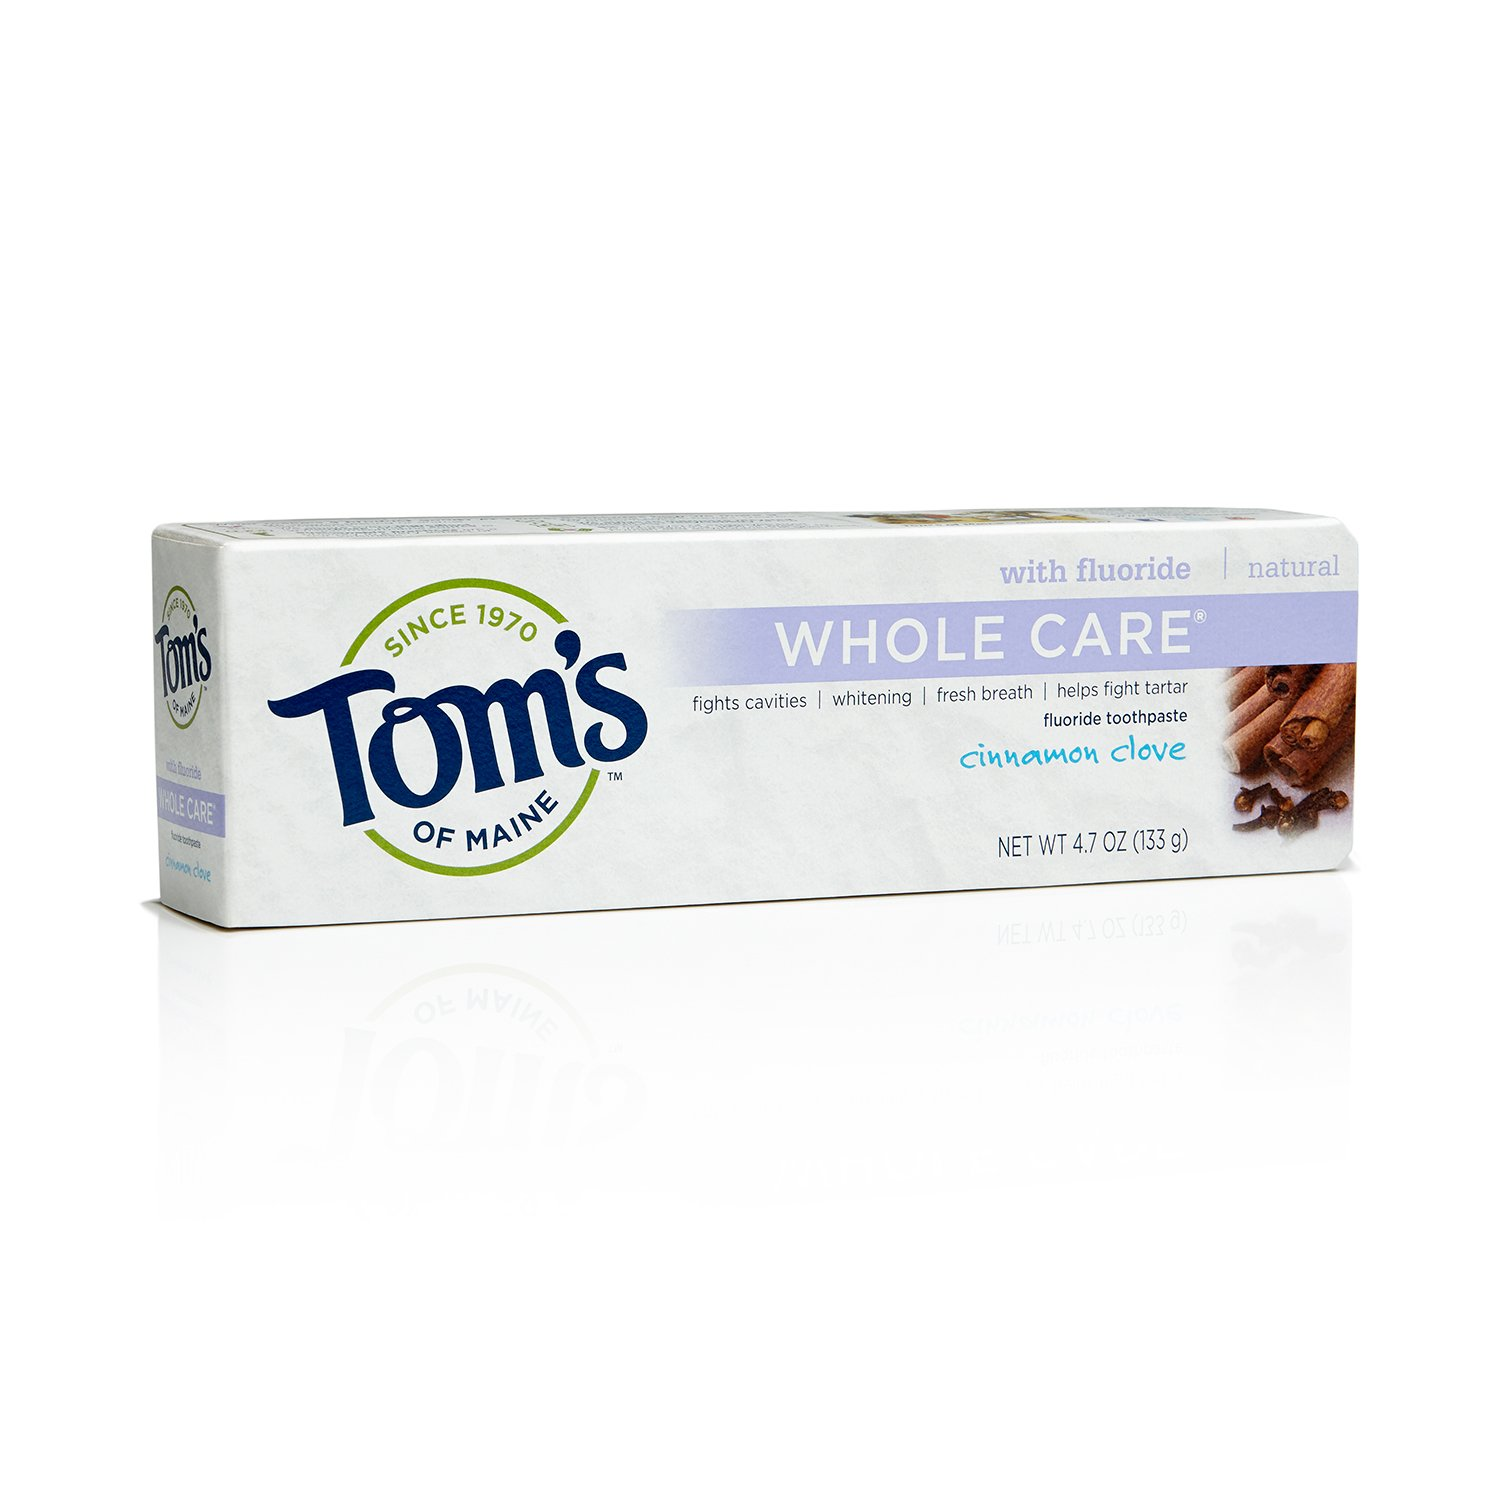 Tom's of Maine 683073 Whole Care Natural Toothpaste, Cinnamon Clove, 4.7 Ounce, 24 Count